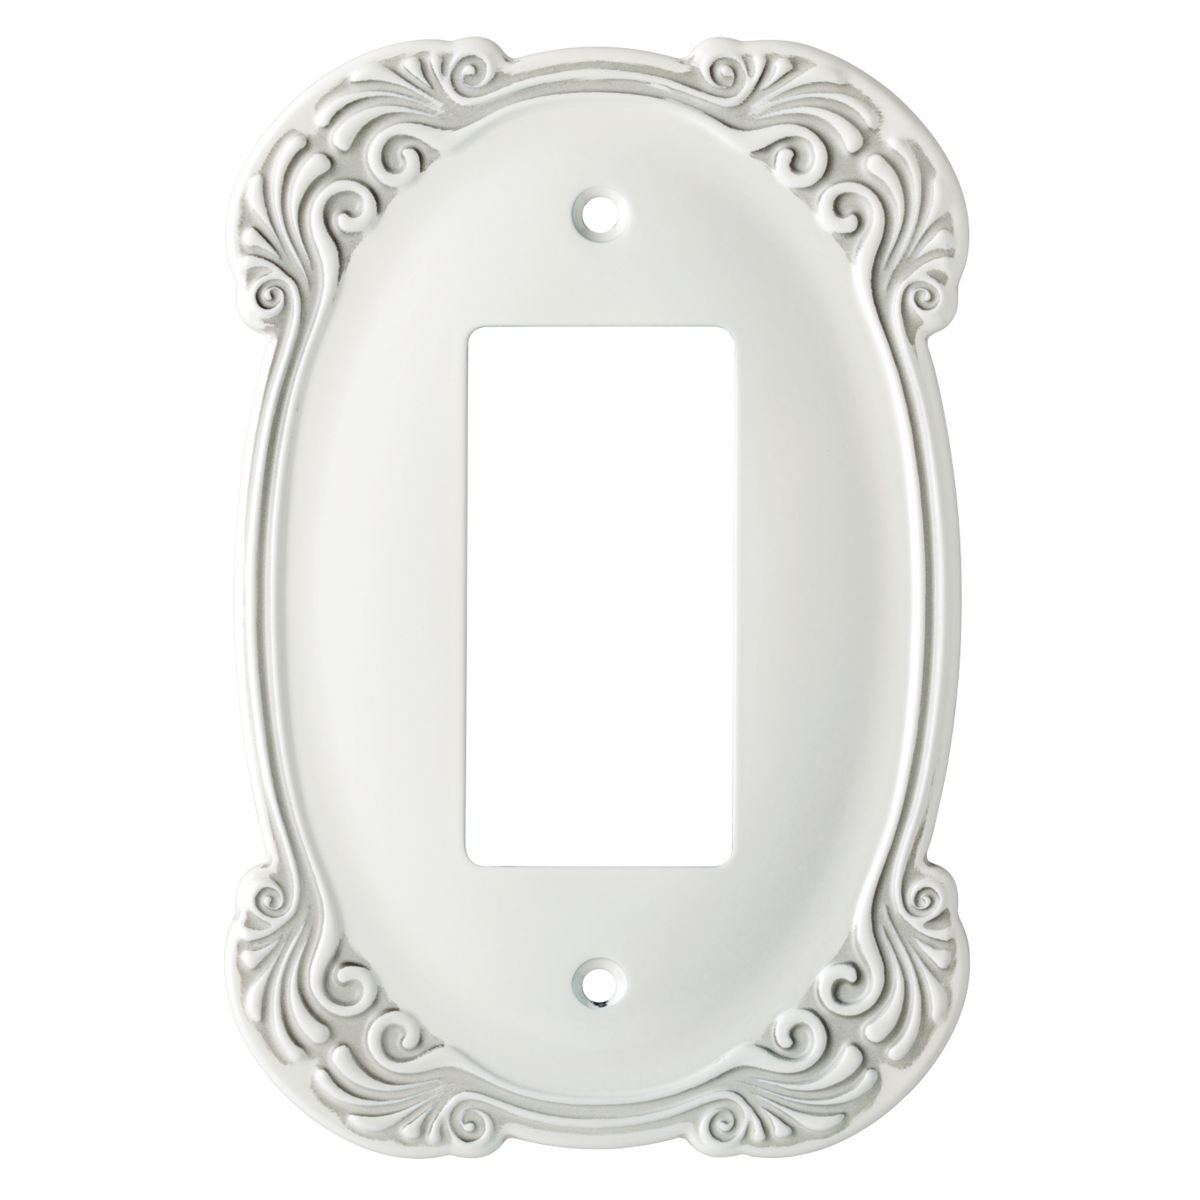 Franklin Brass 144392 Arboresque Single Decorator Wall Plate / Switch Plate / Cover BRAINERD